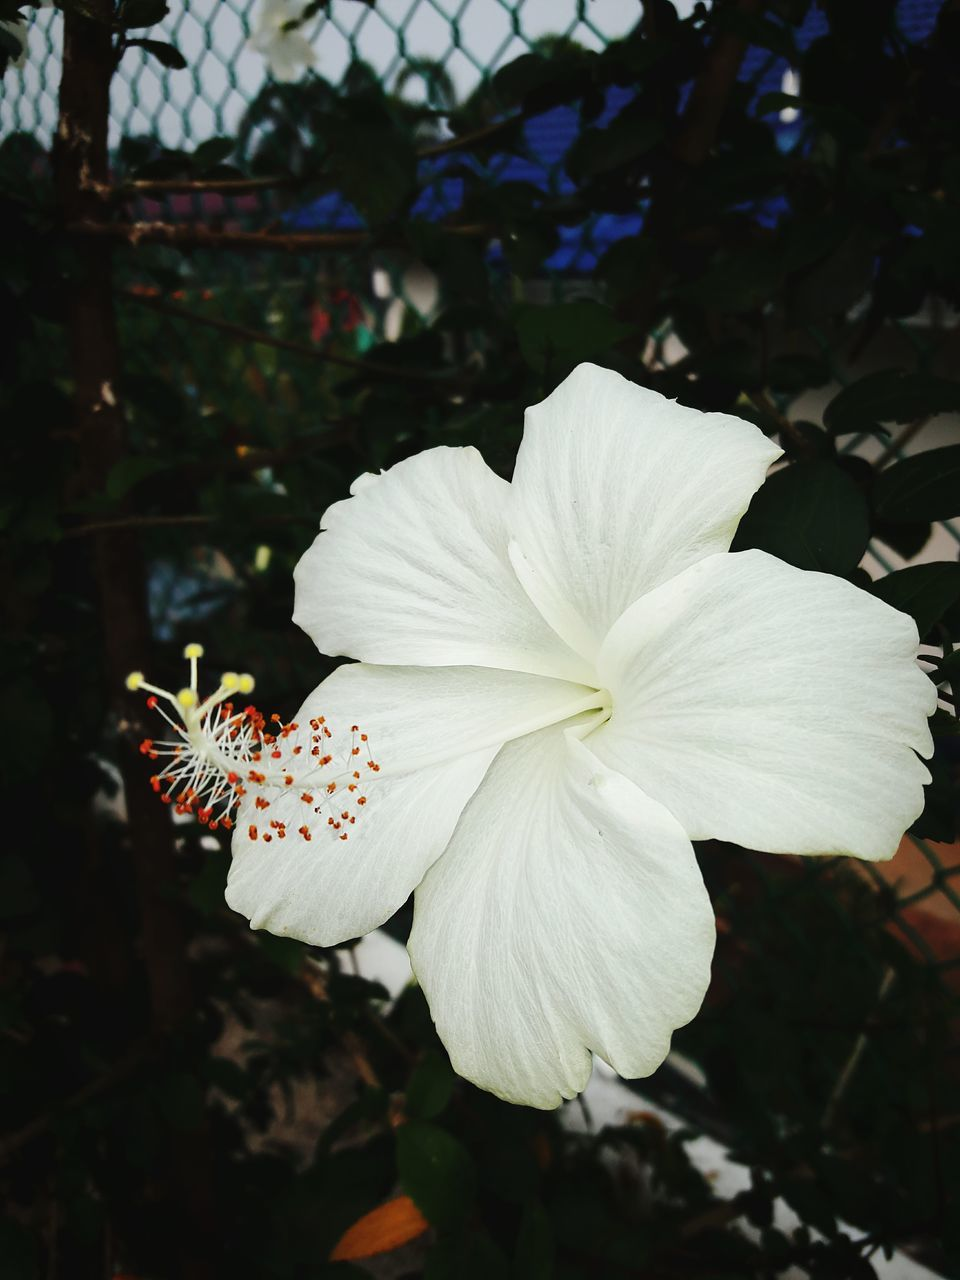 petal, flower, beauty in nature, fragility, flower head, growth, nature, white color, freshness, close-up, focus on foreground, outdoors, plant, day, blooming, no people